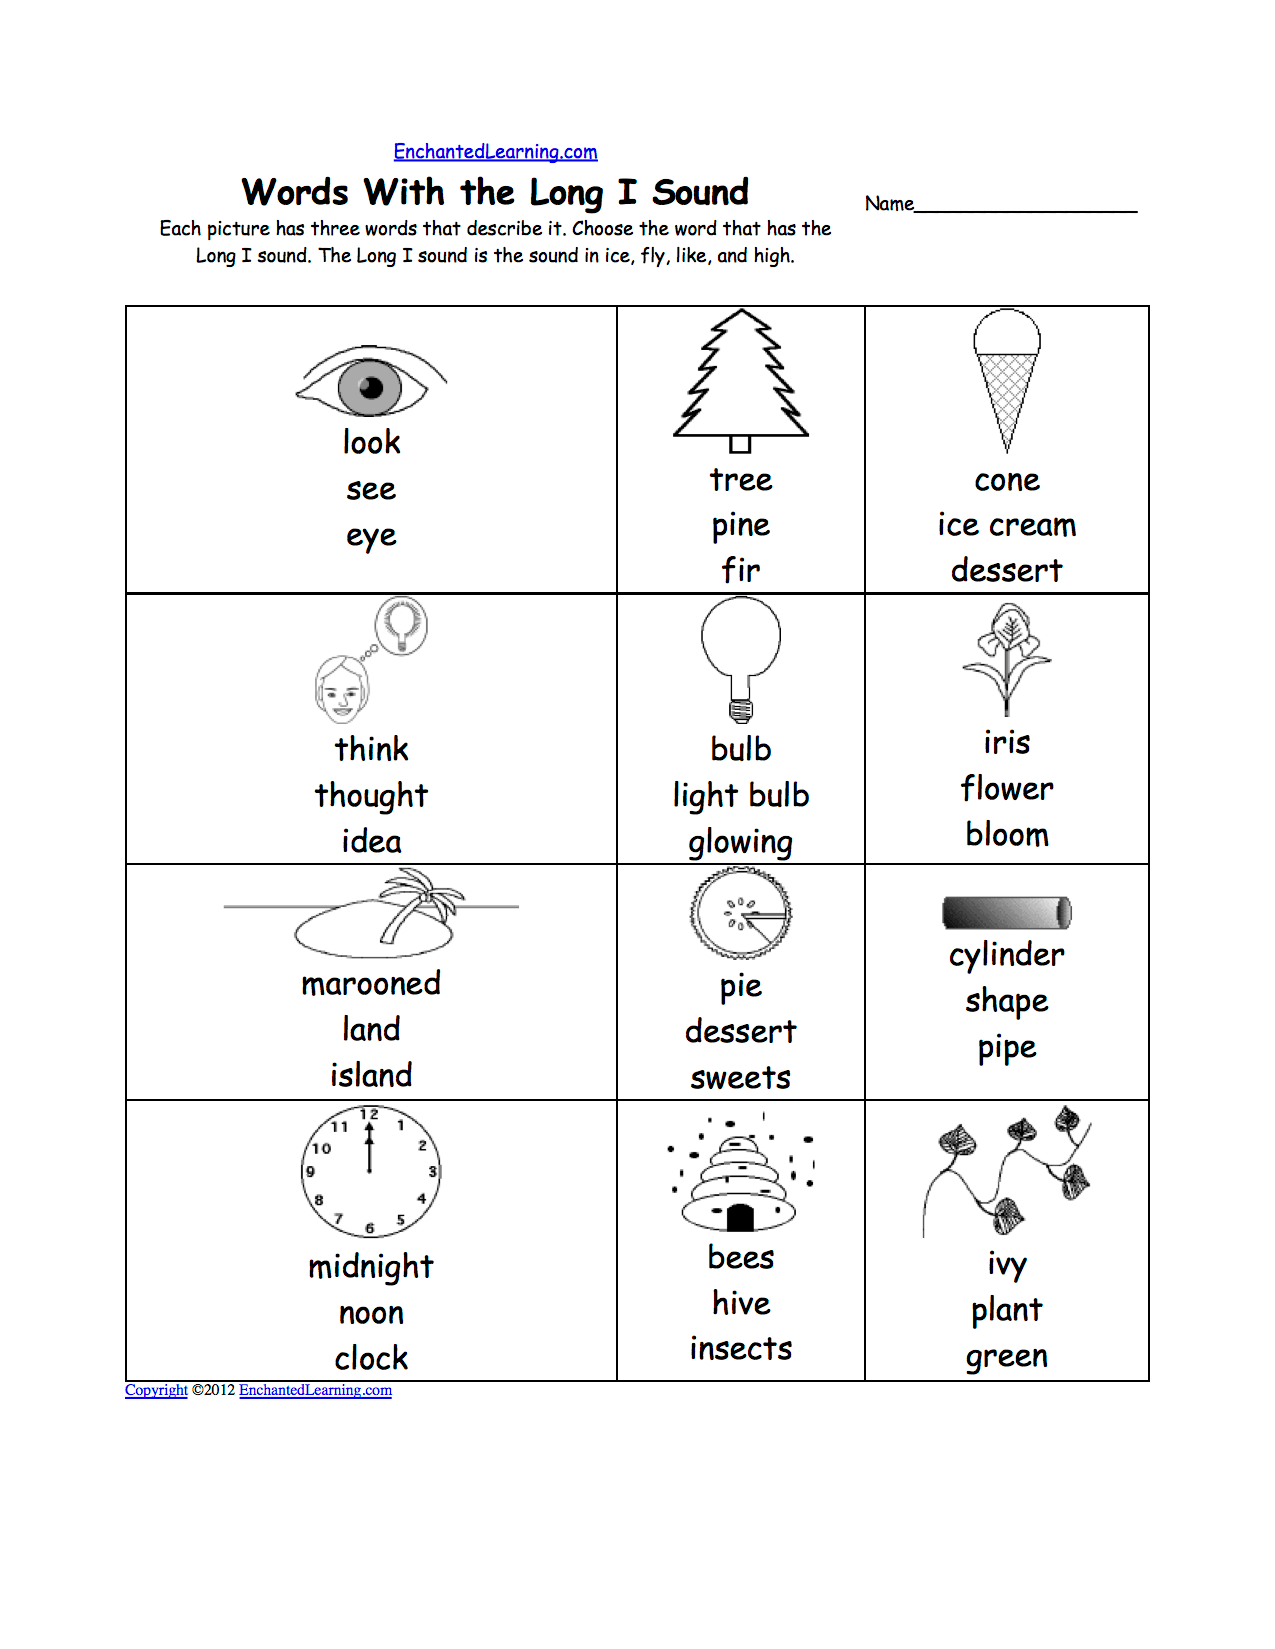 Worksheets On Light Energyworksheets On Light Energy Start Practicing Now With Online Tests